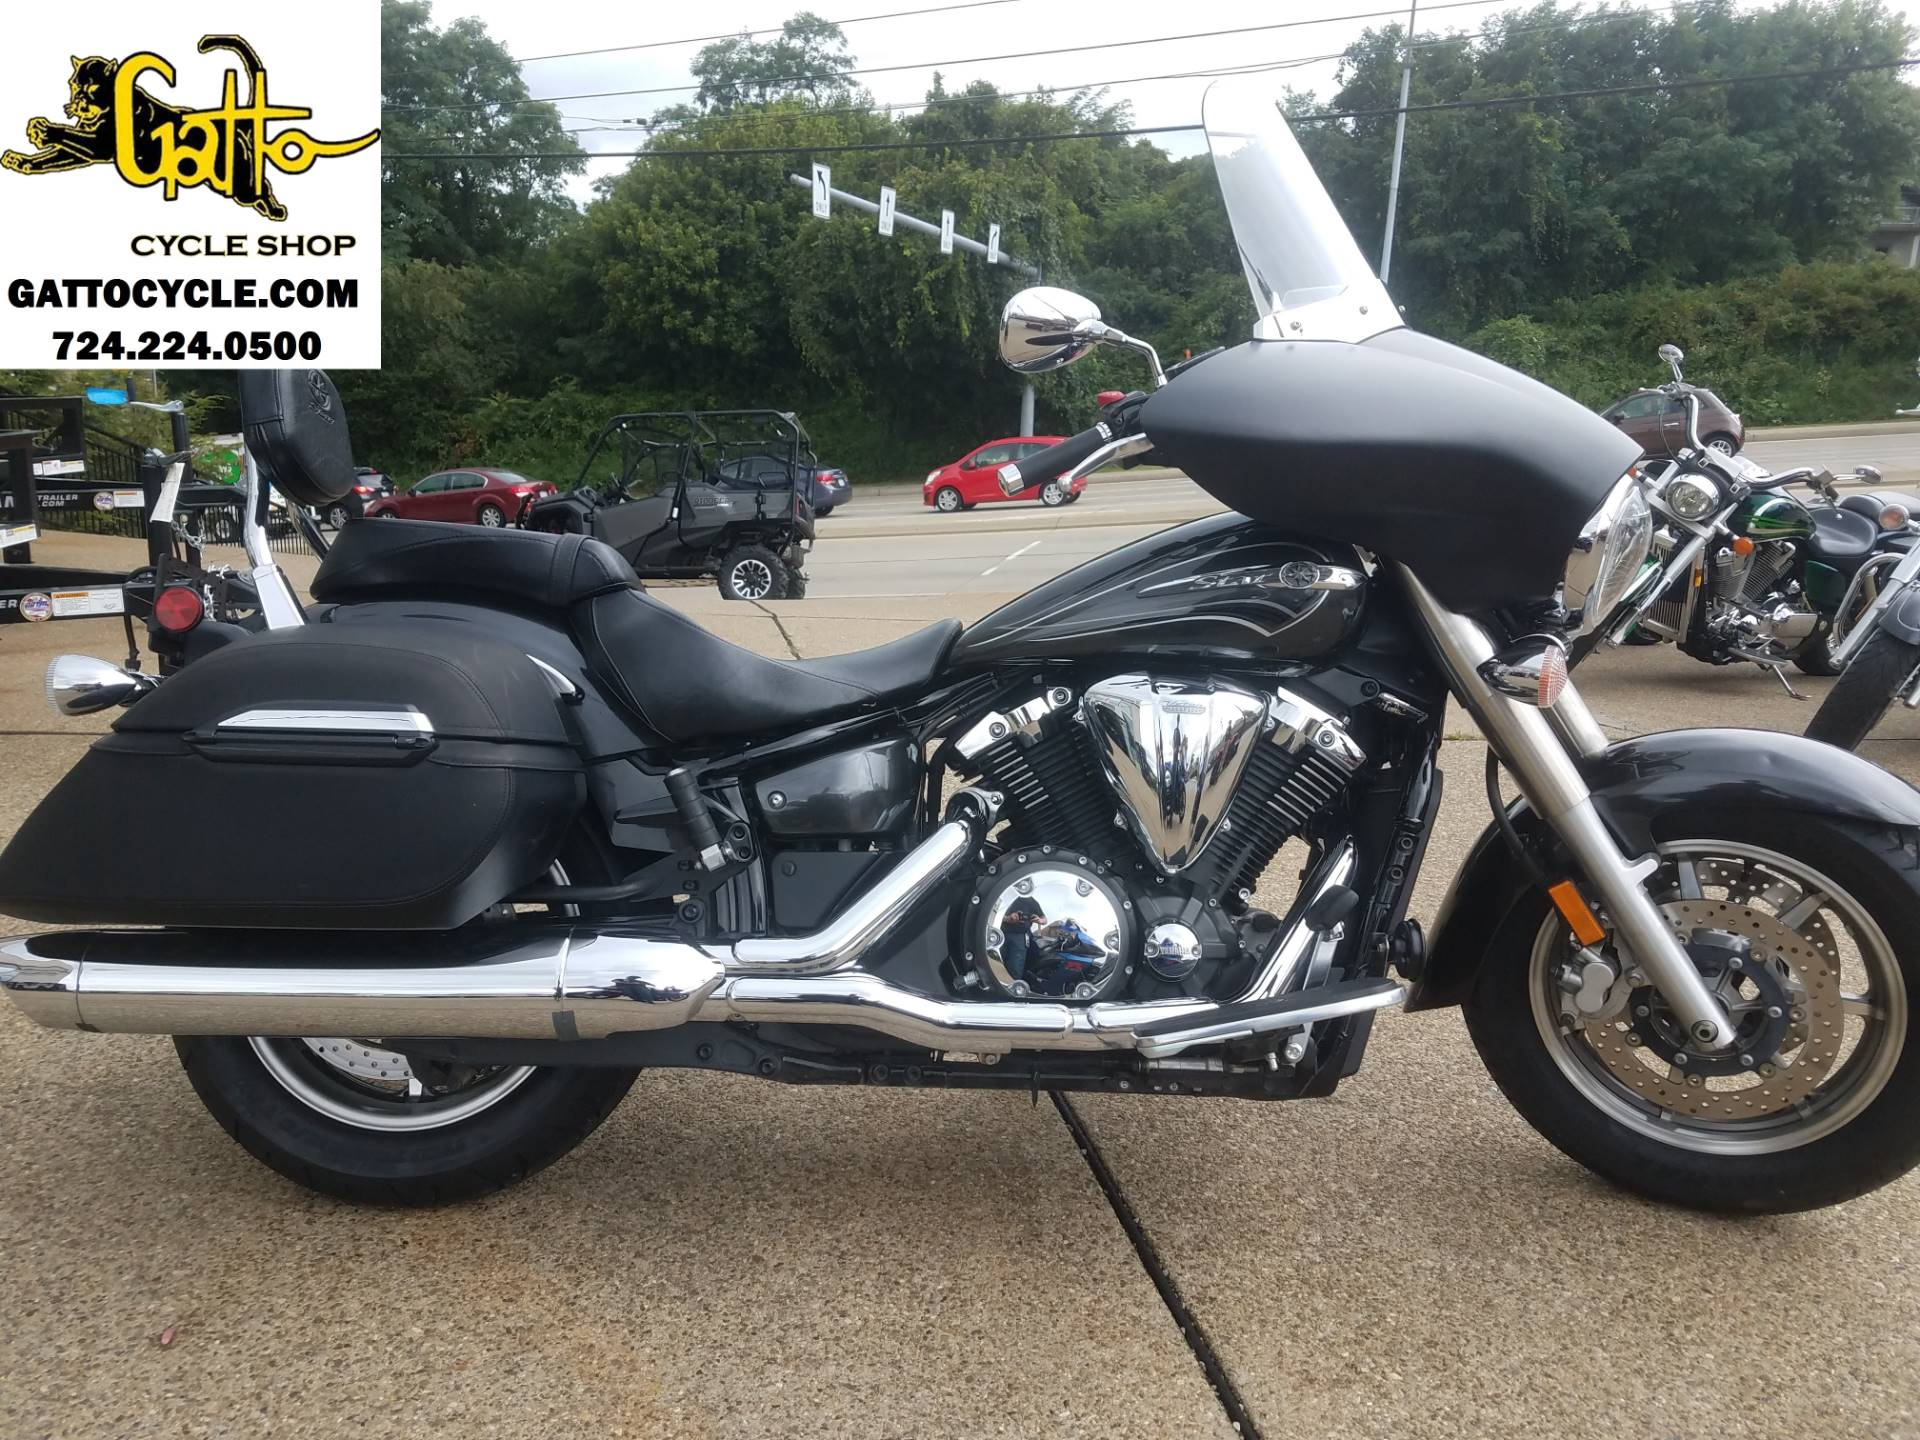 2012 Yamaha V Star 1300 Tourer in Tarentum, Pennsylvania